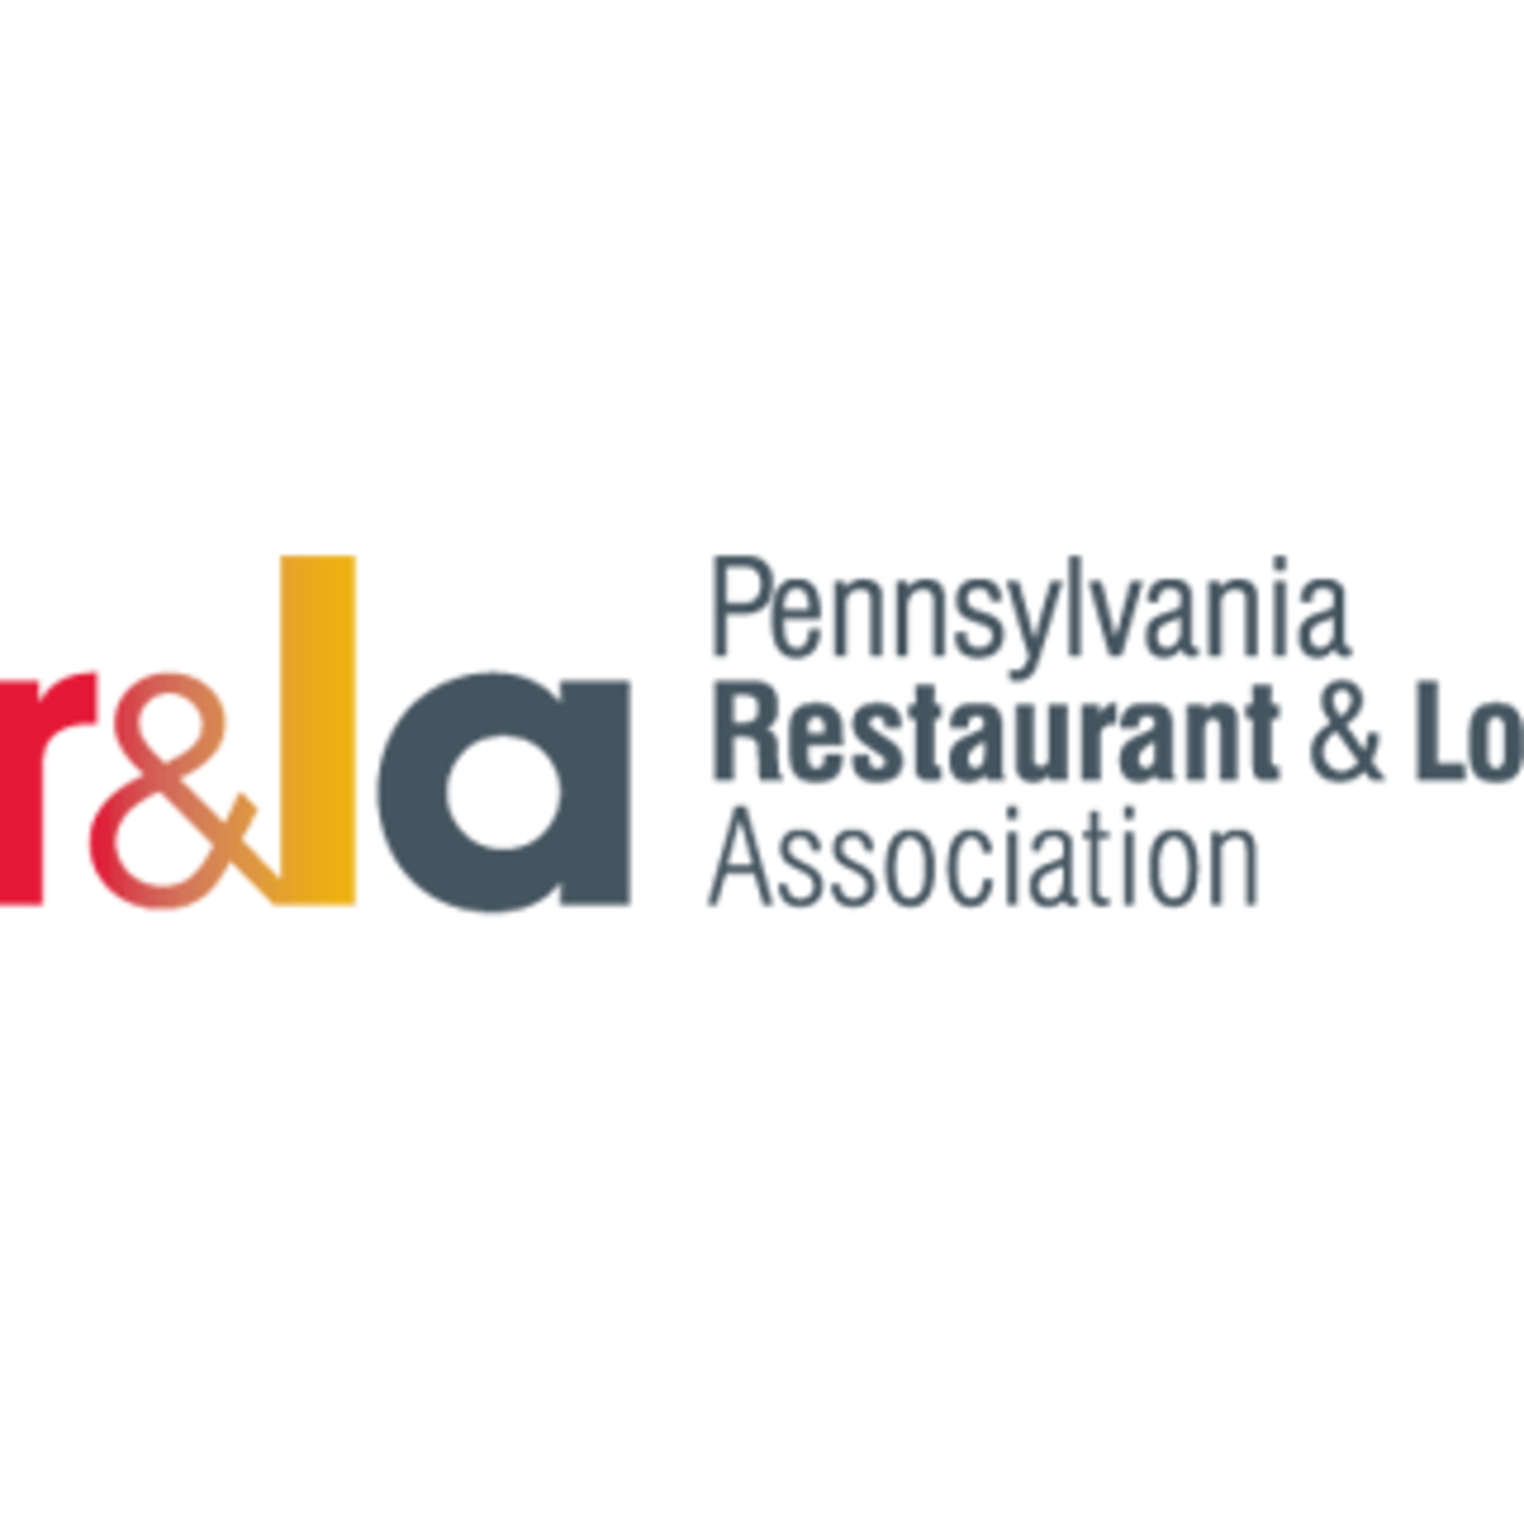 Pennsylvania Restaurant & Lodging Association